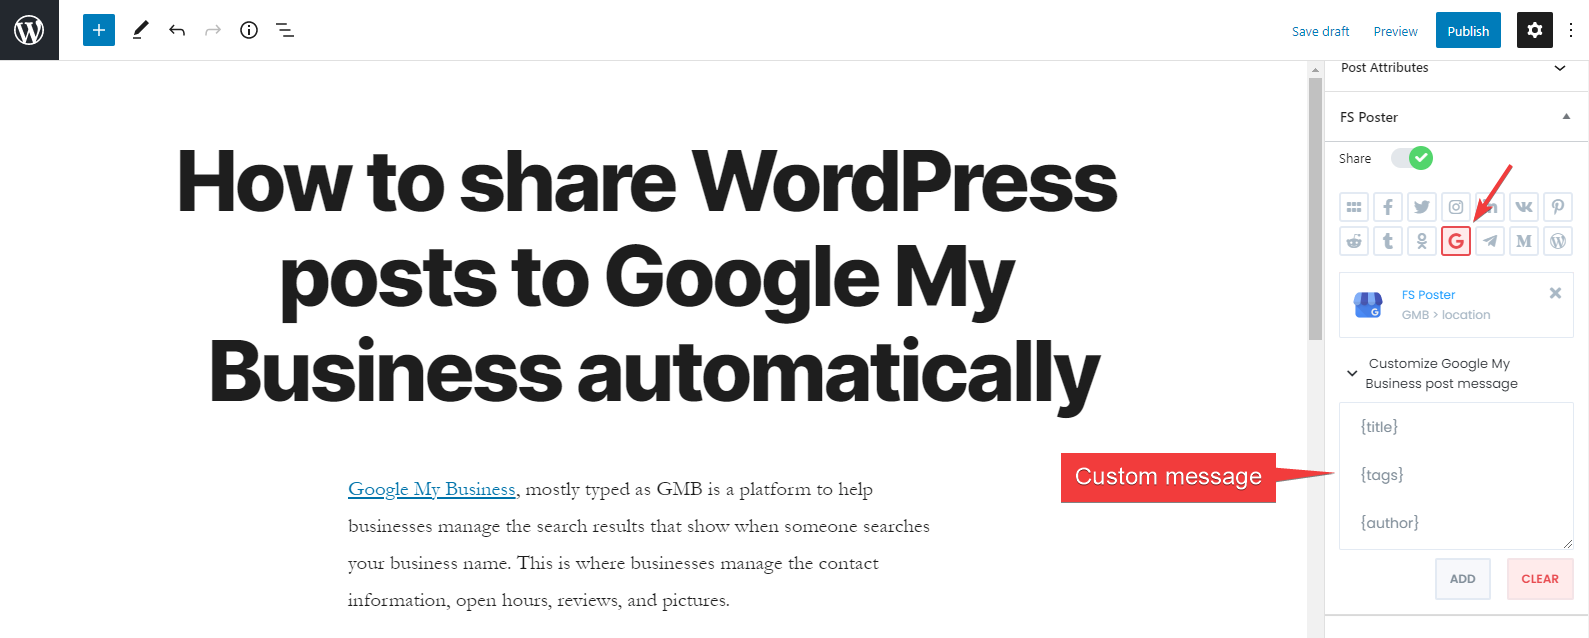 How to share WordPress posts to Google My Business automatically